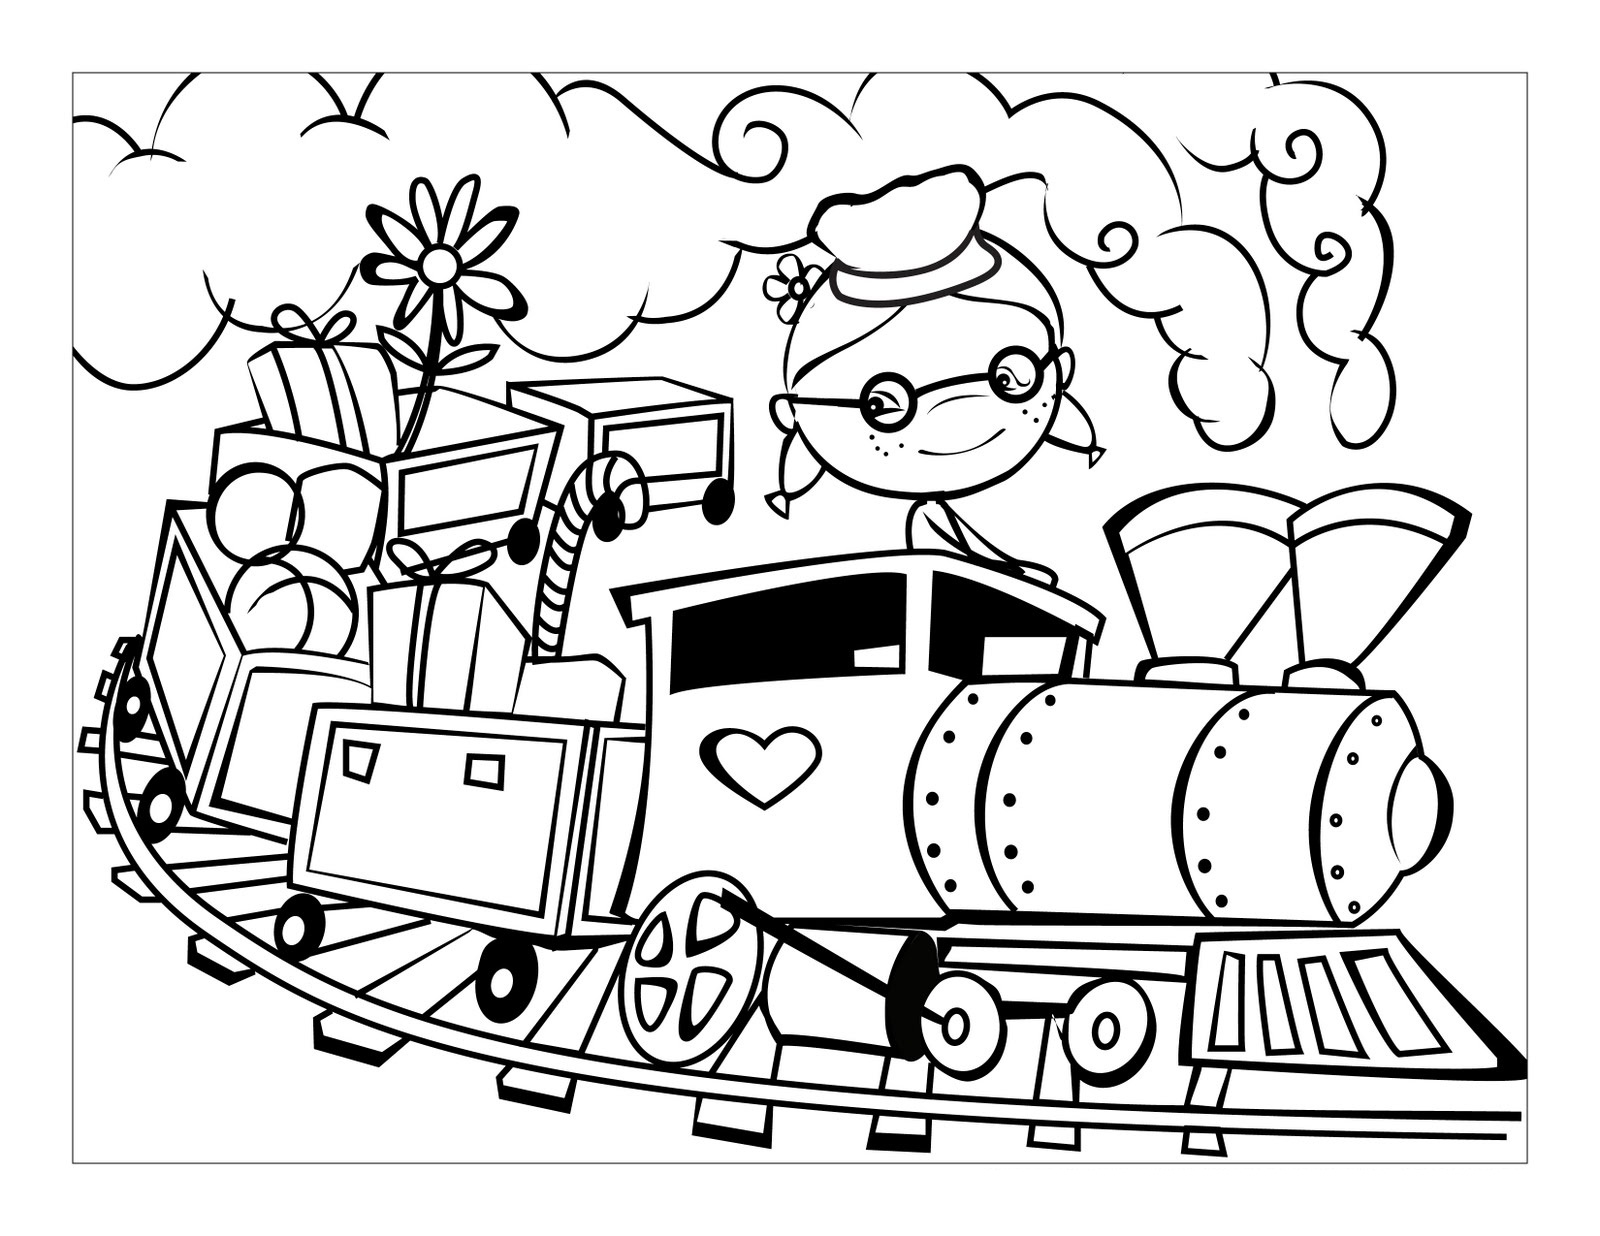 printable train coloring pages free printable train coloring pages for kids pages printable train coloring